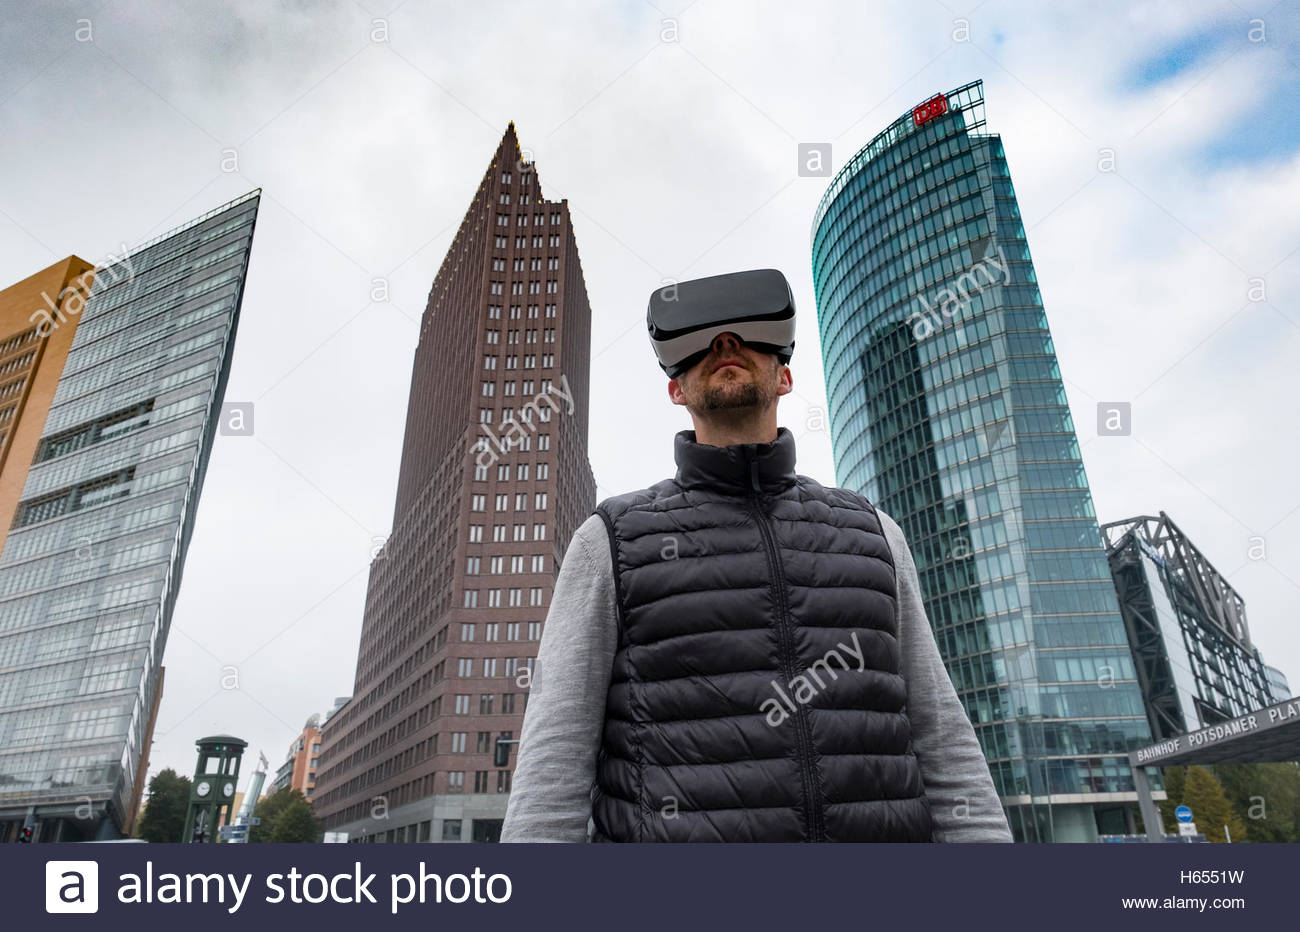 Man wearing Virtual Reality (VR) goggles at Potsdamer Platz in Berlin, Germany - Stock Image